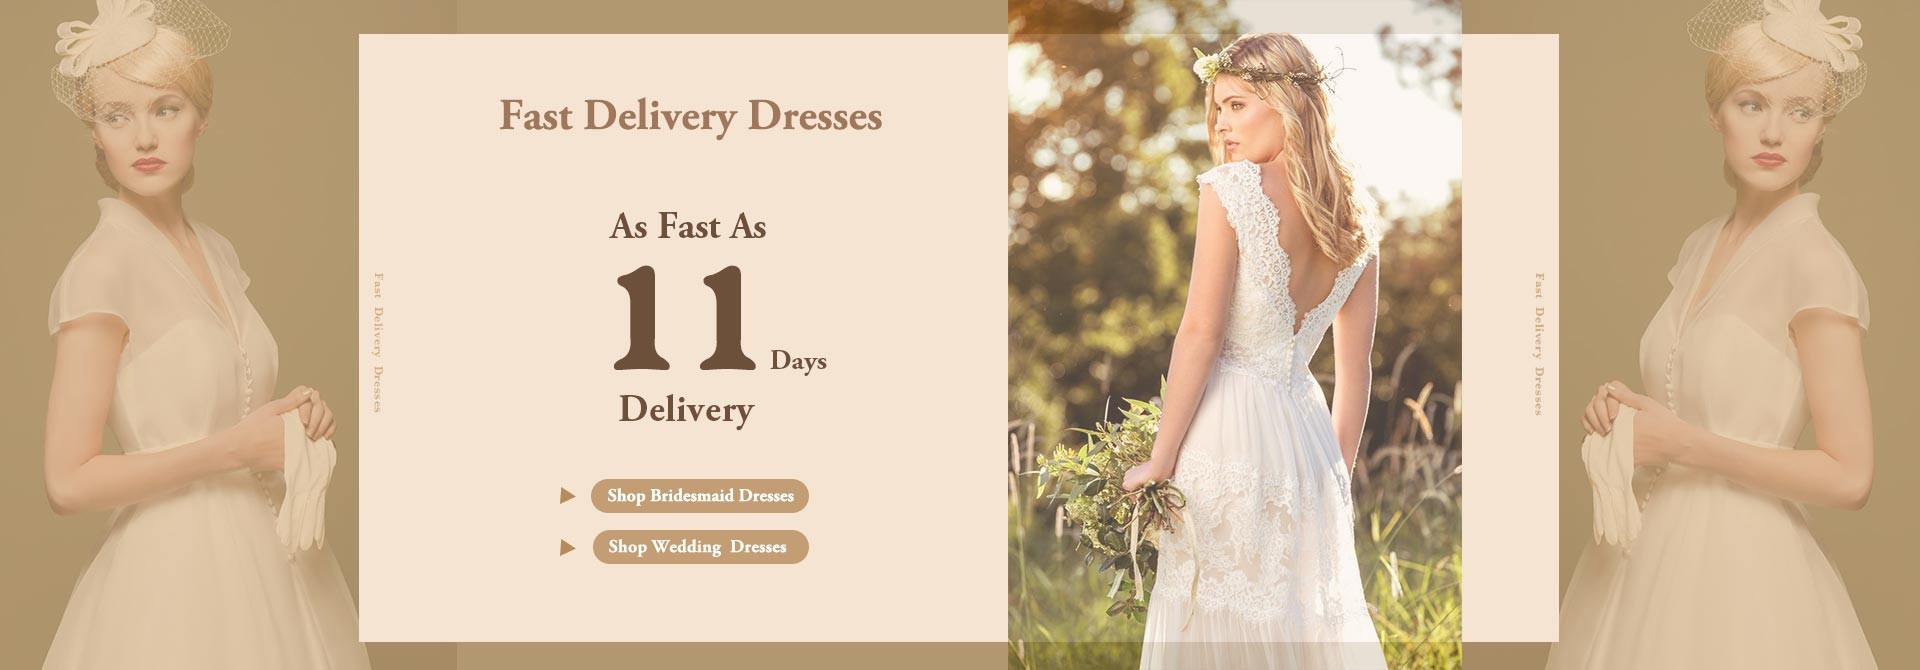 Fast Delivery Made to Order Dresses! As Fast As 11 Days Delivery!